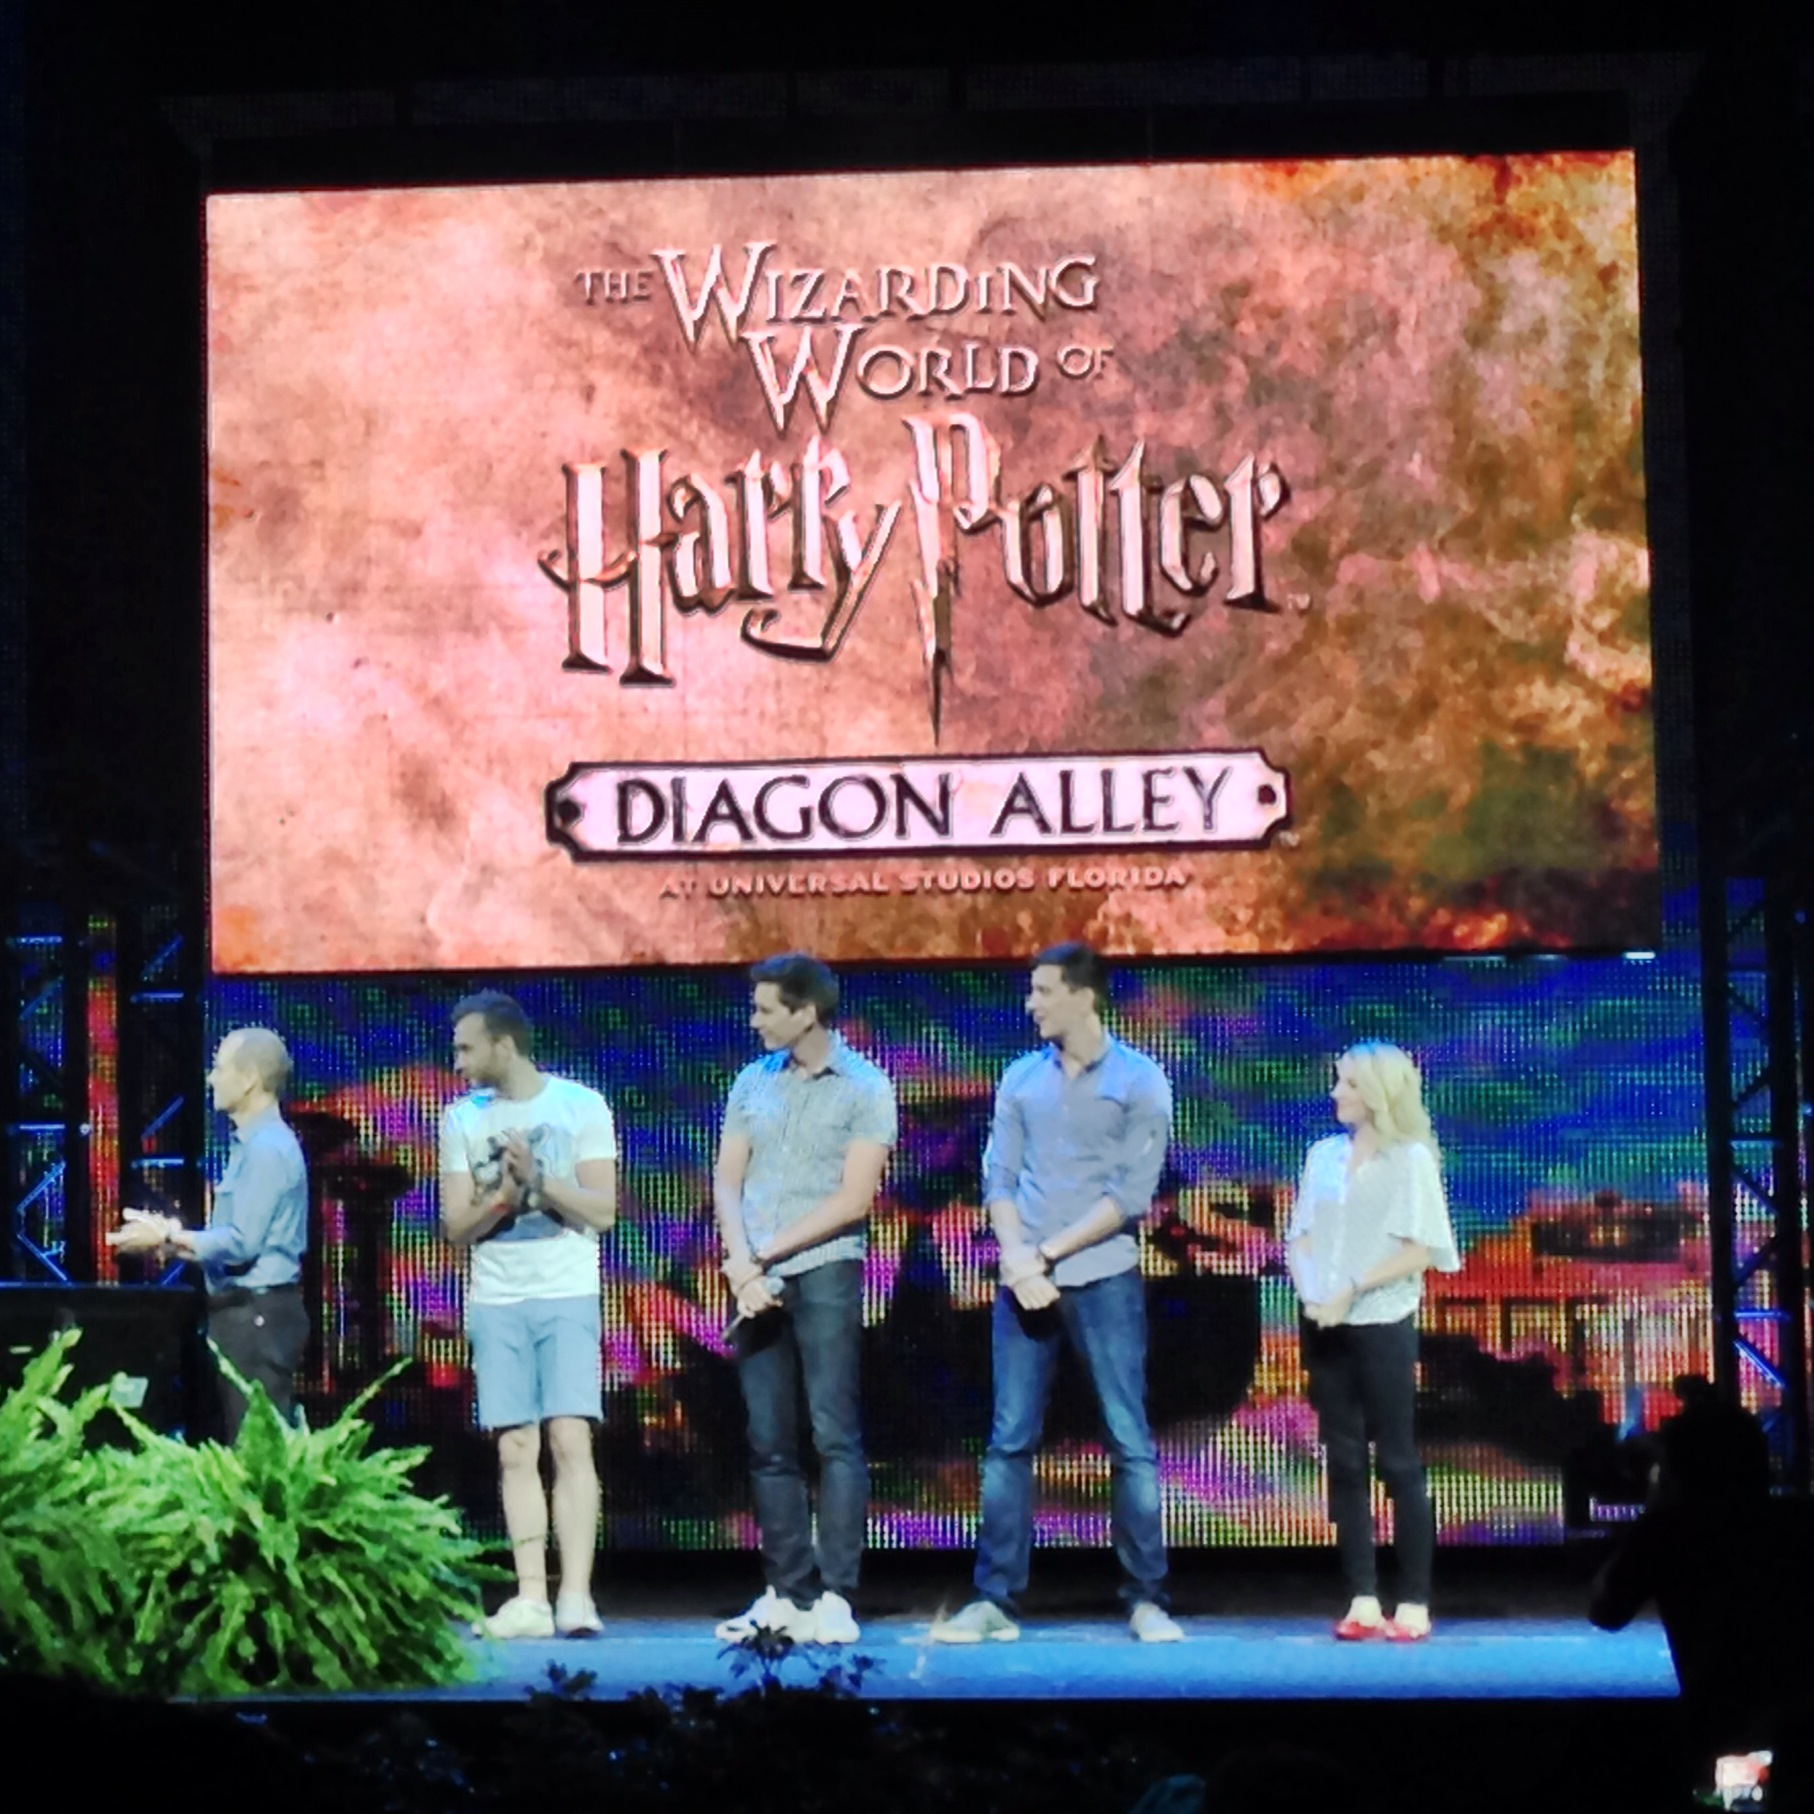 Evanna Lynch (Luna Lovegood), Matthew Lewis (Neville Longbottom), James Phelps (Fred Weasley), and Oliver Phelps (George Weasley) made a surprise announcement that t